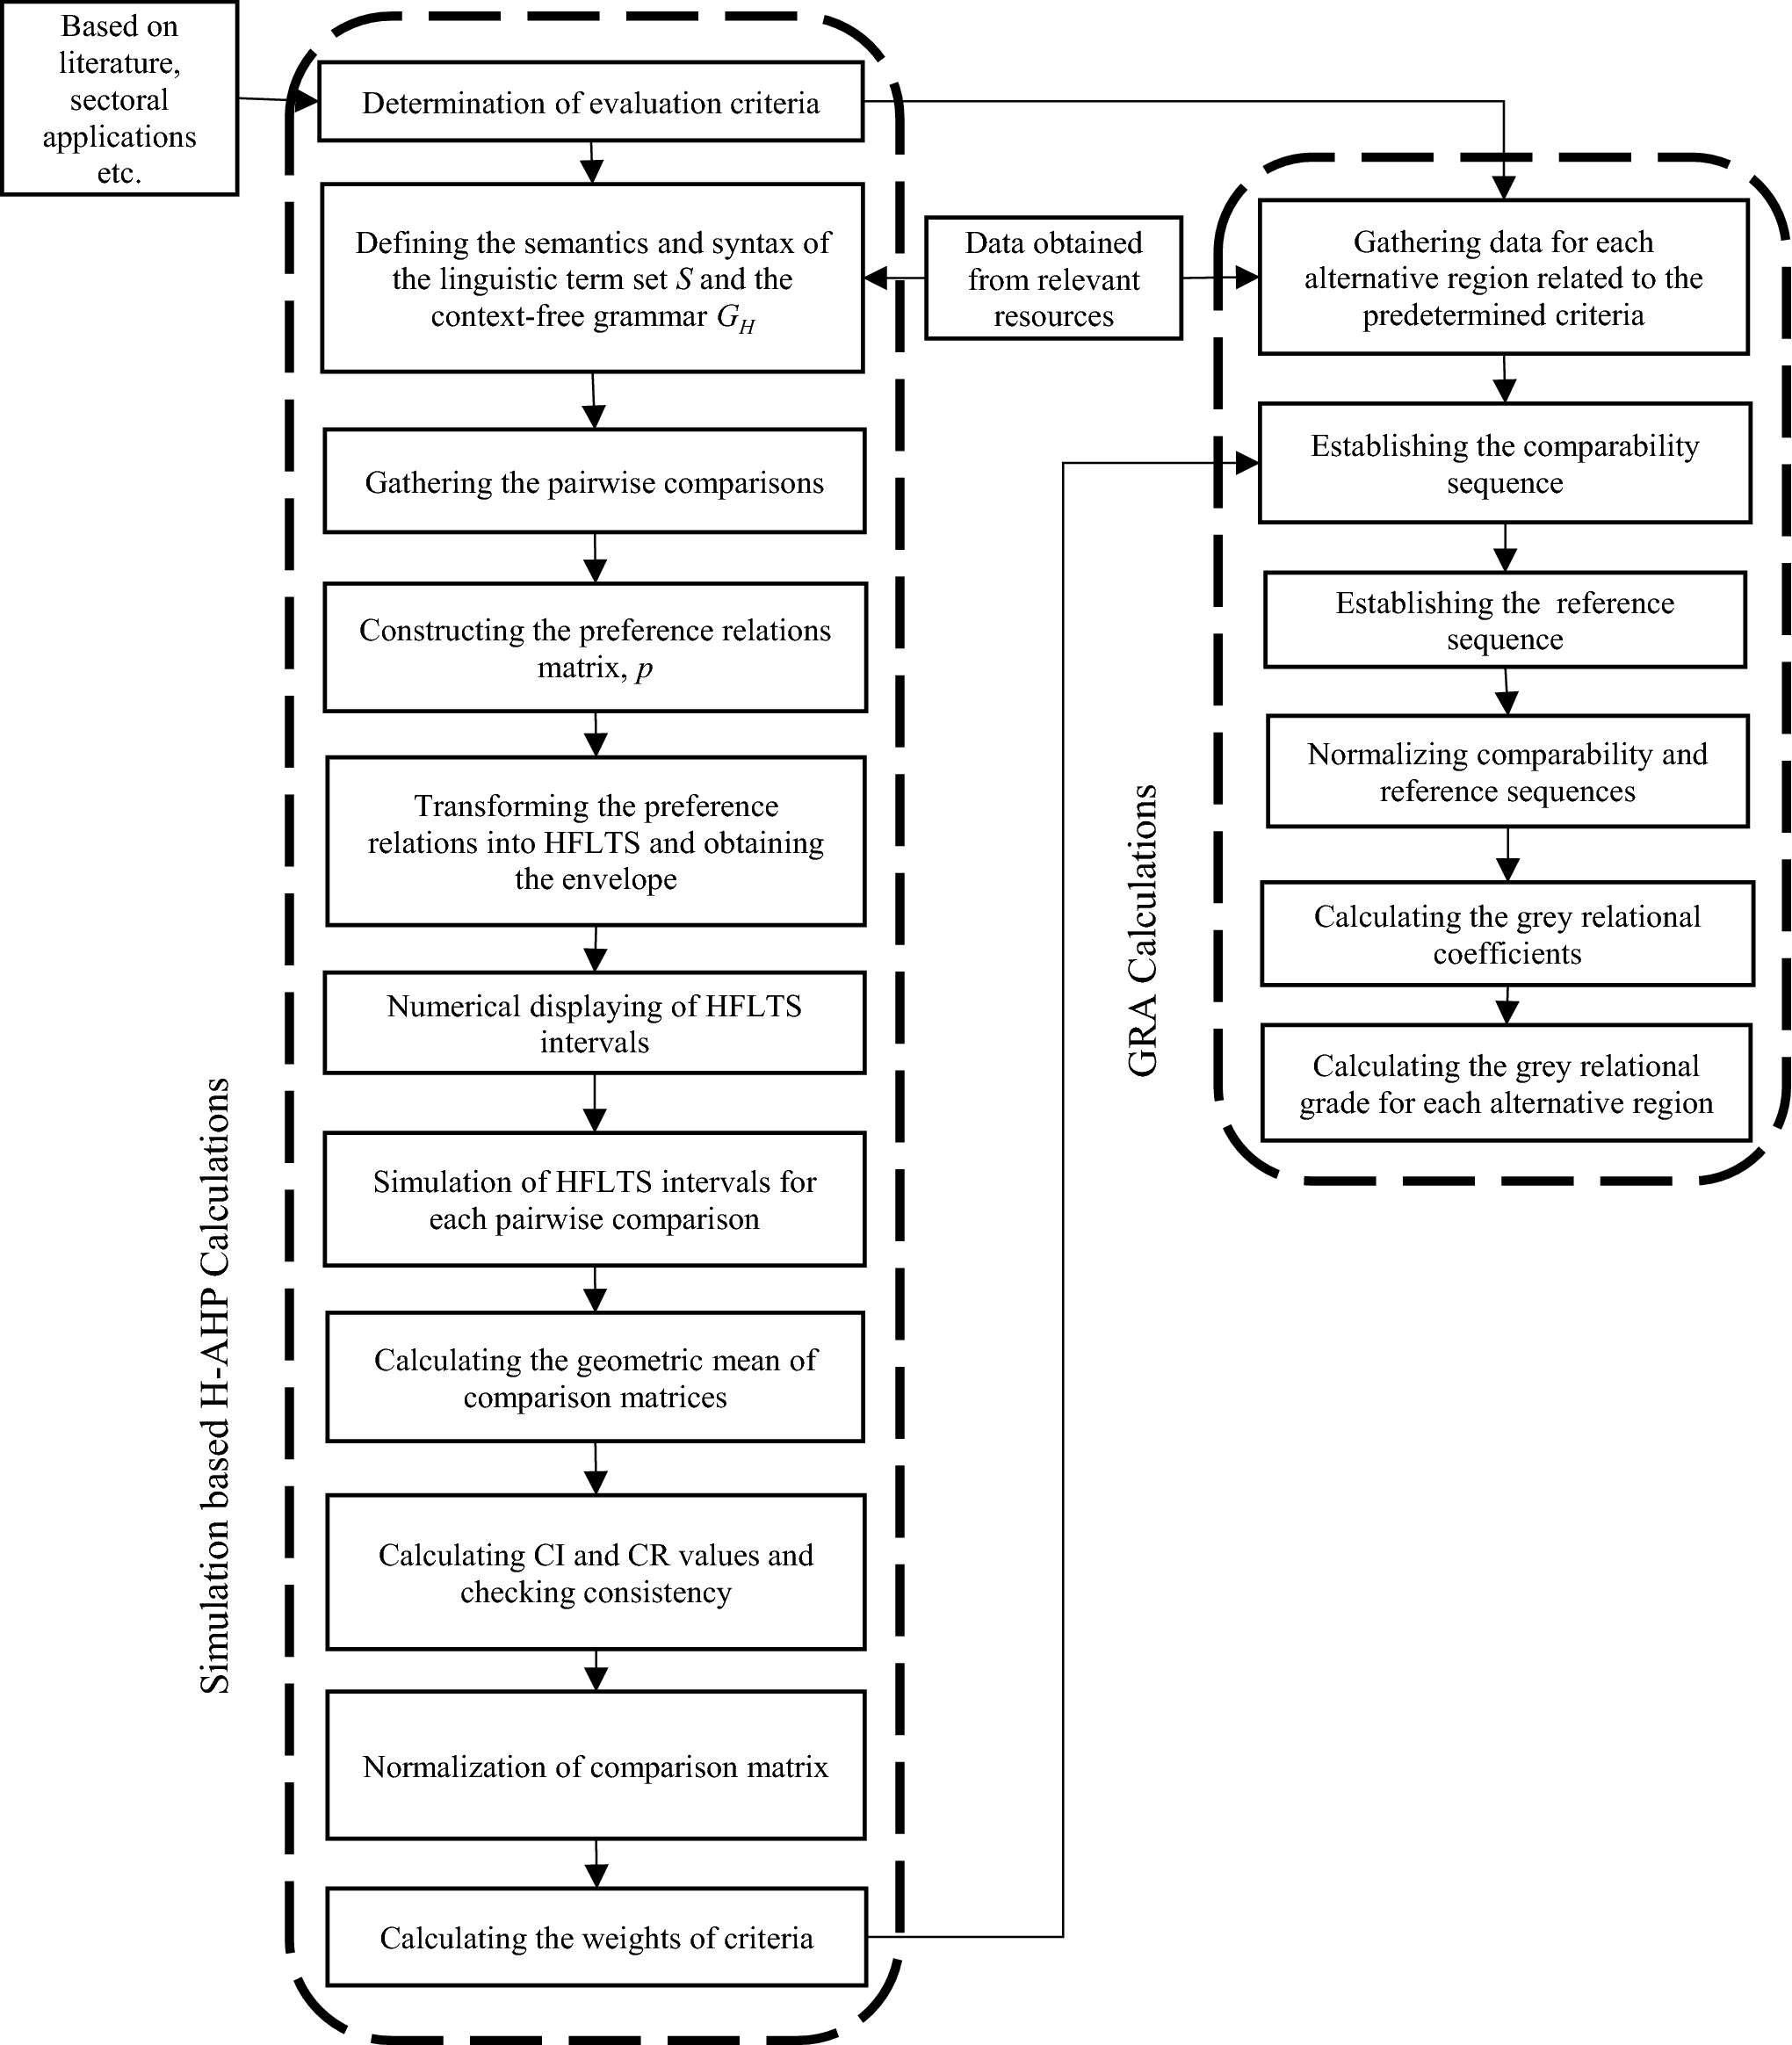 A novel multi-criteria analysis model for the performance